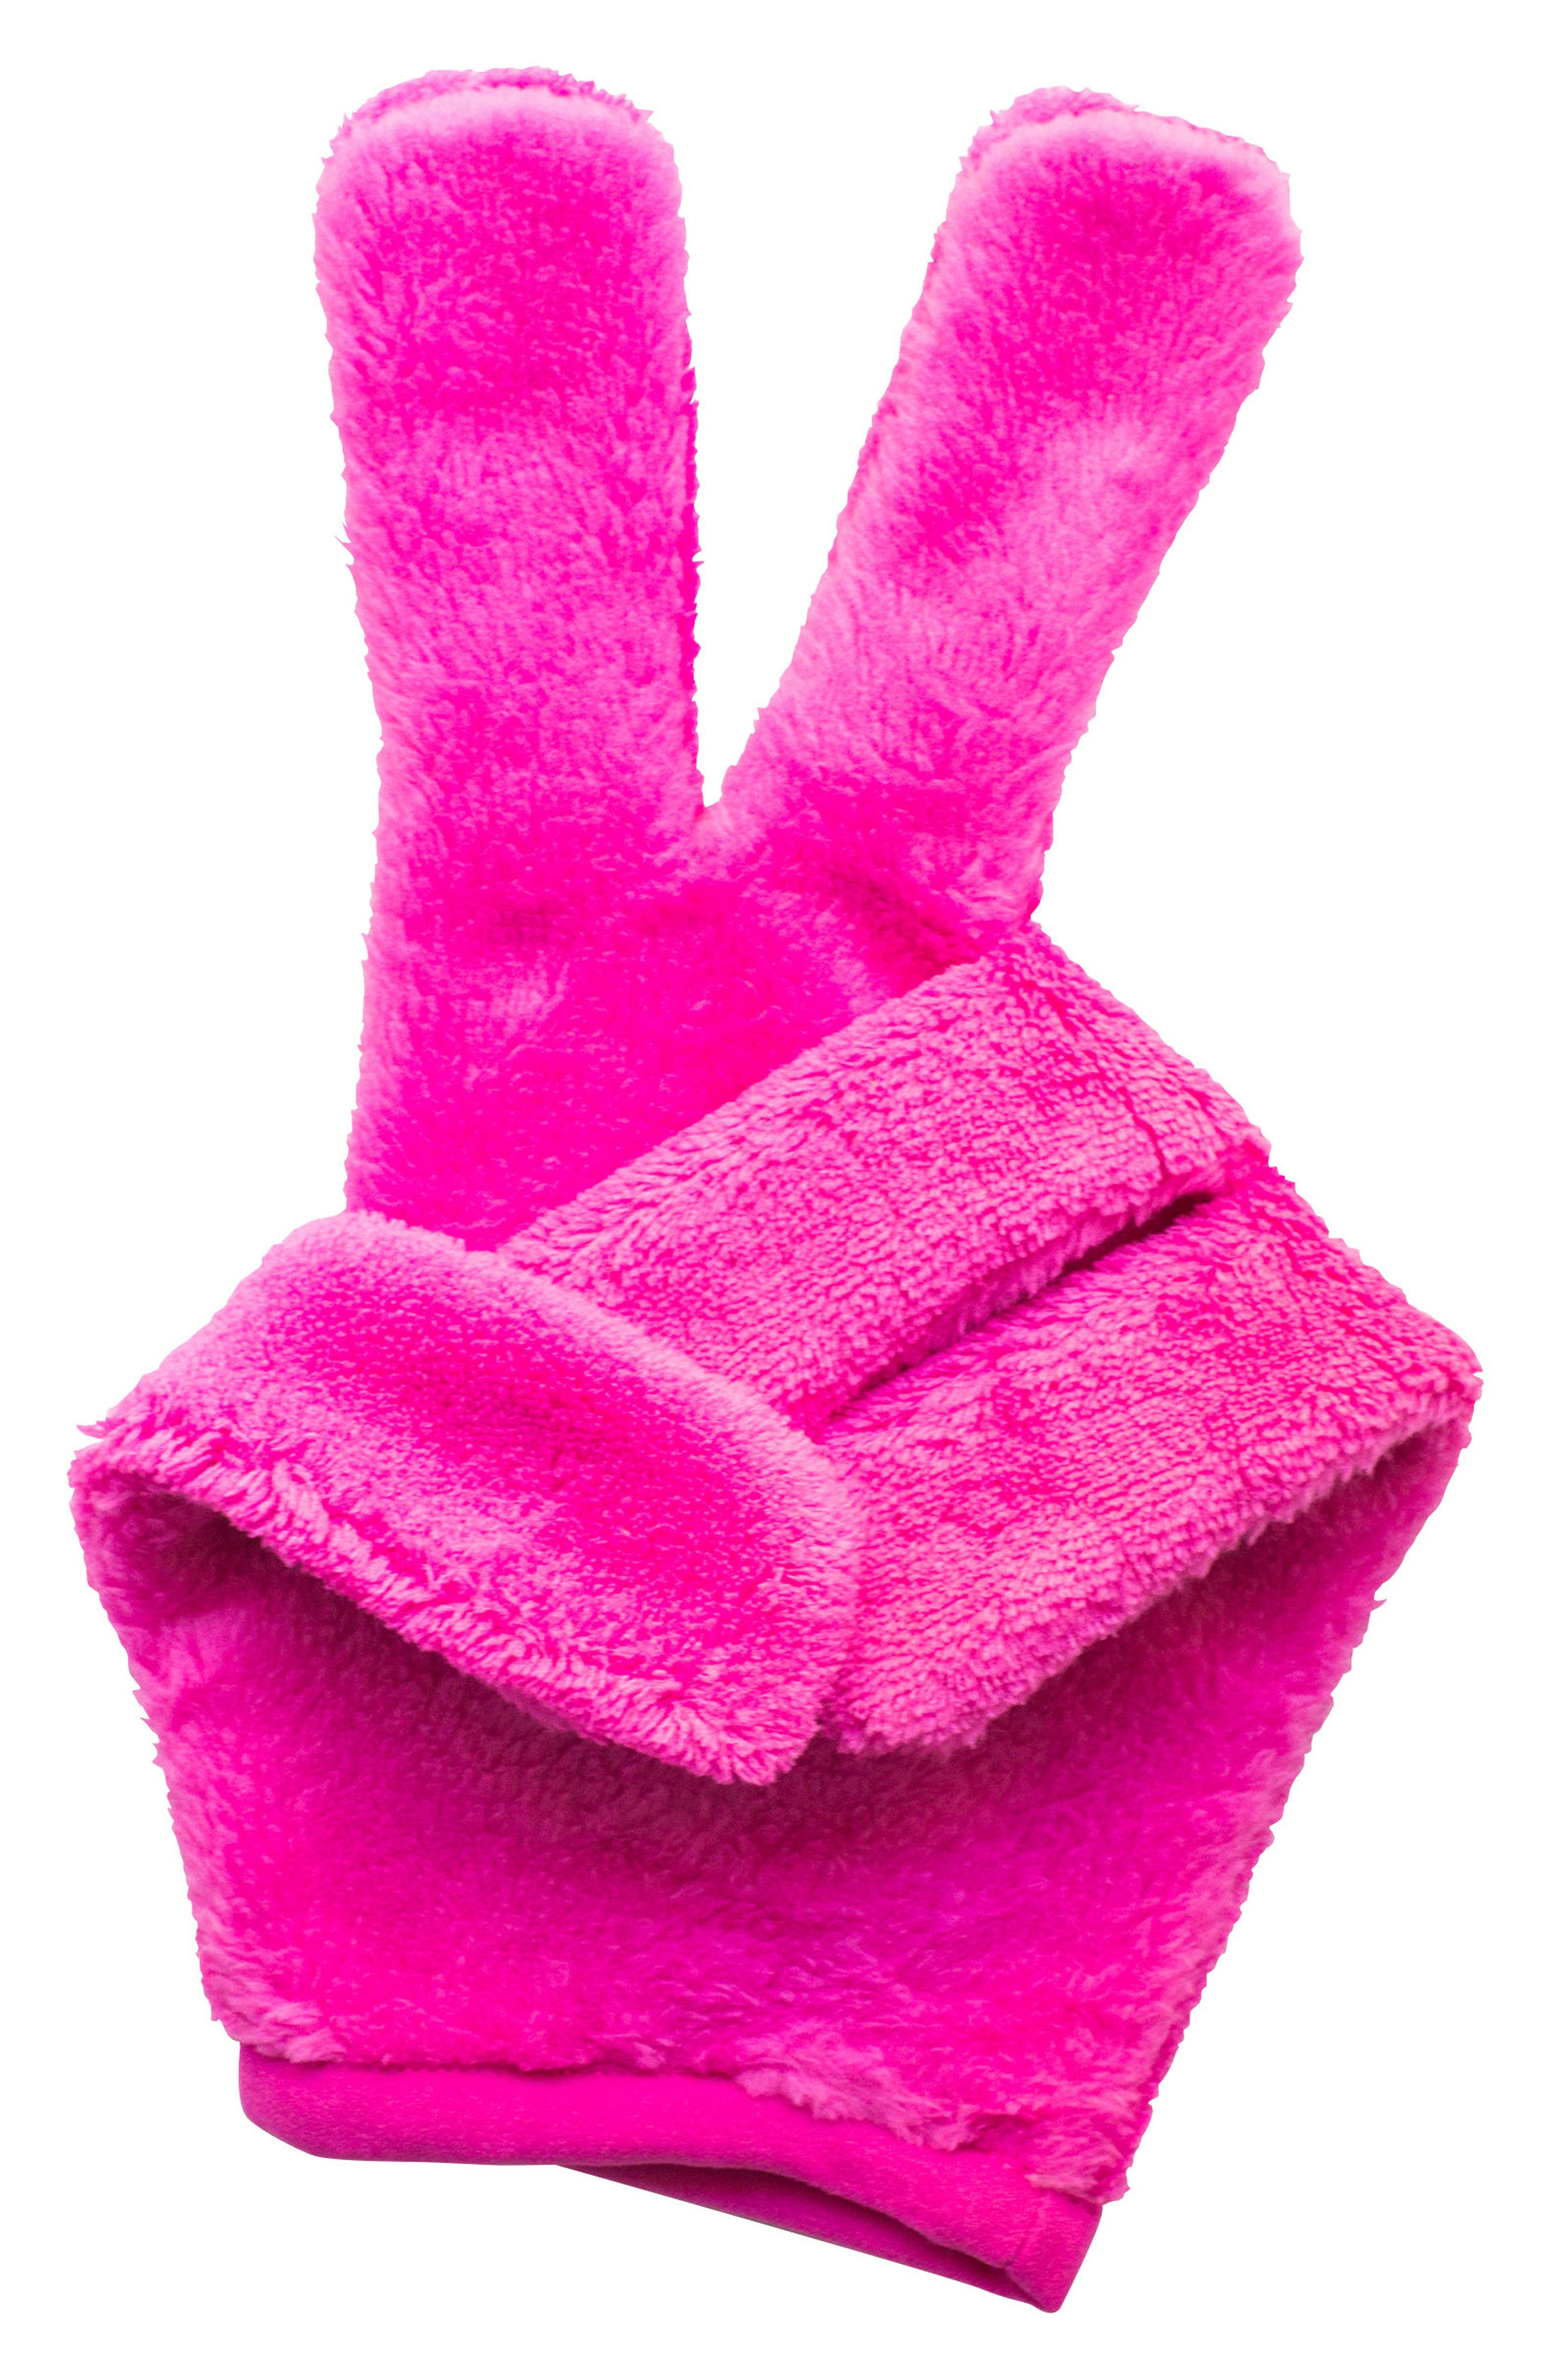 2-Pack The Glove Makeup Brush and Tool Cleaner,                             Alternate thumbnail 2, color,                             No Color